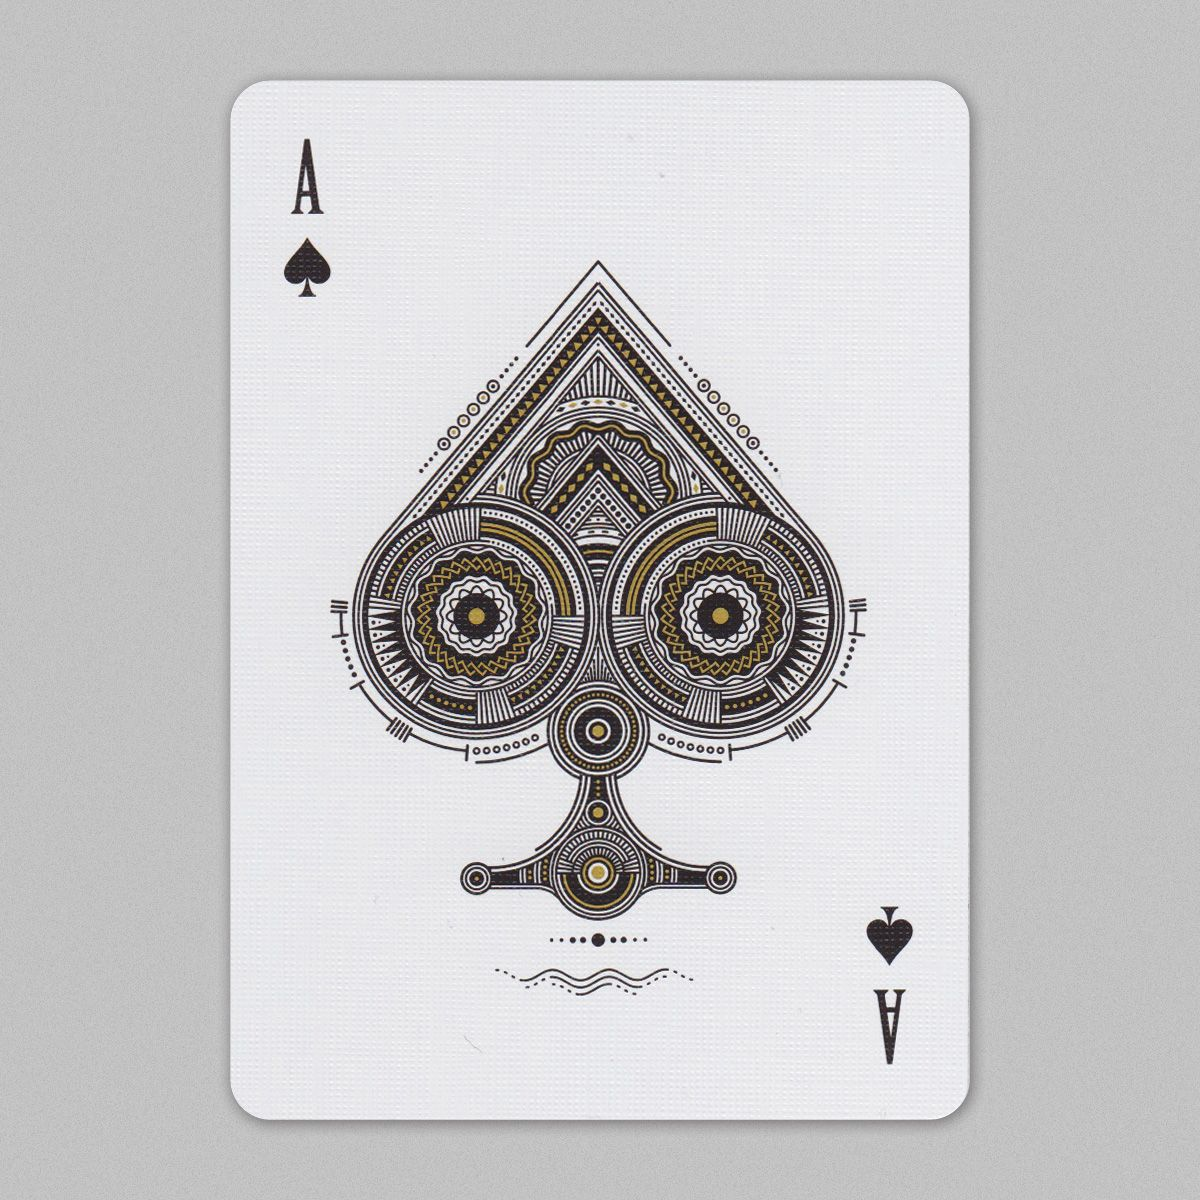 Believe cards playing cards and plays artwork believe playing cards aceofspades magicingreecefo Gallery